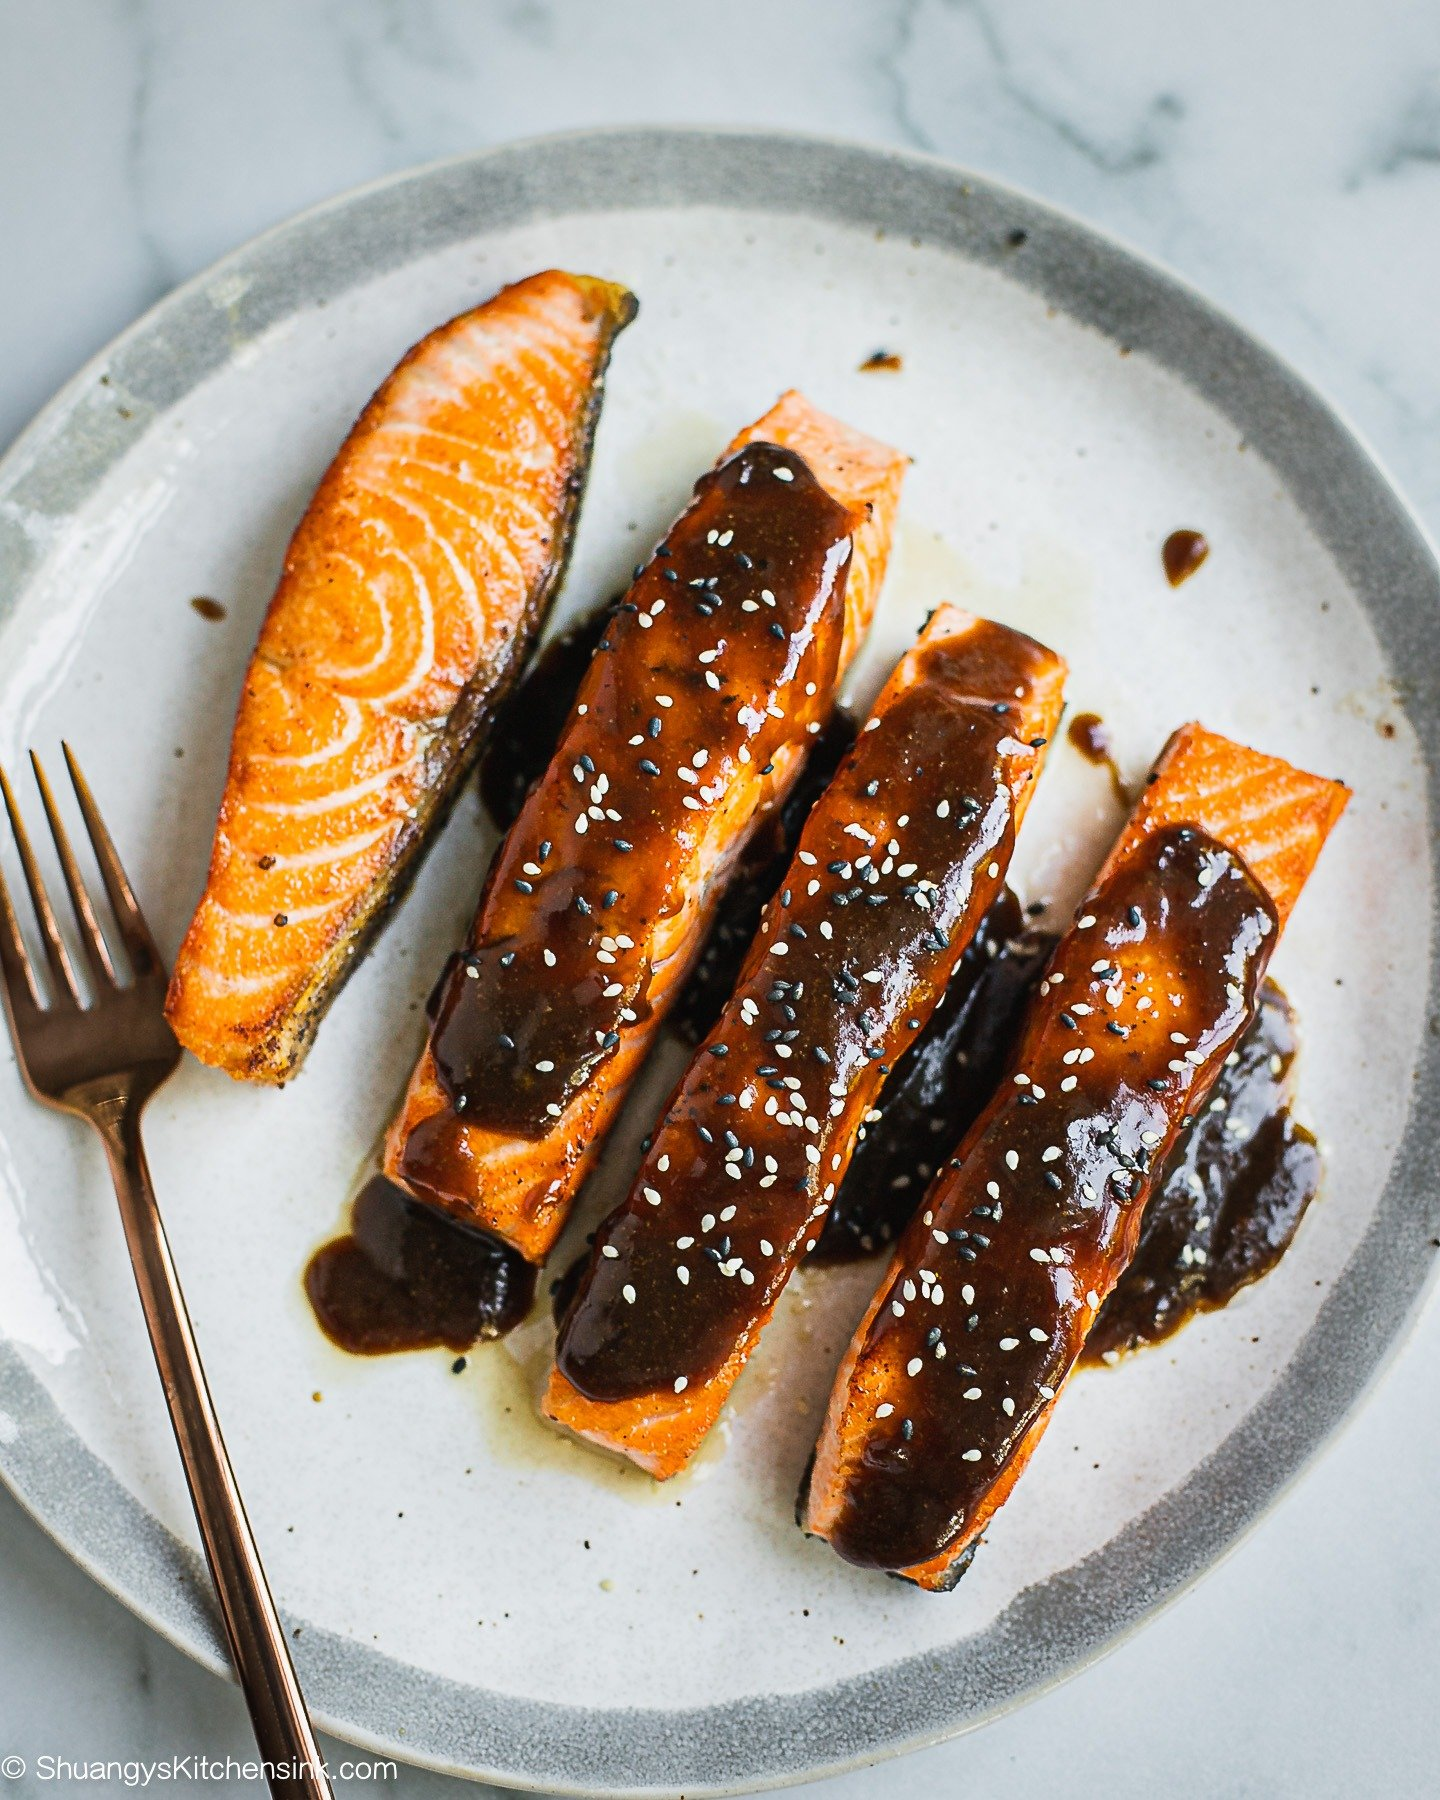 Pan seared teriyaki salmon glazed with teriyaki sauce